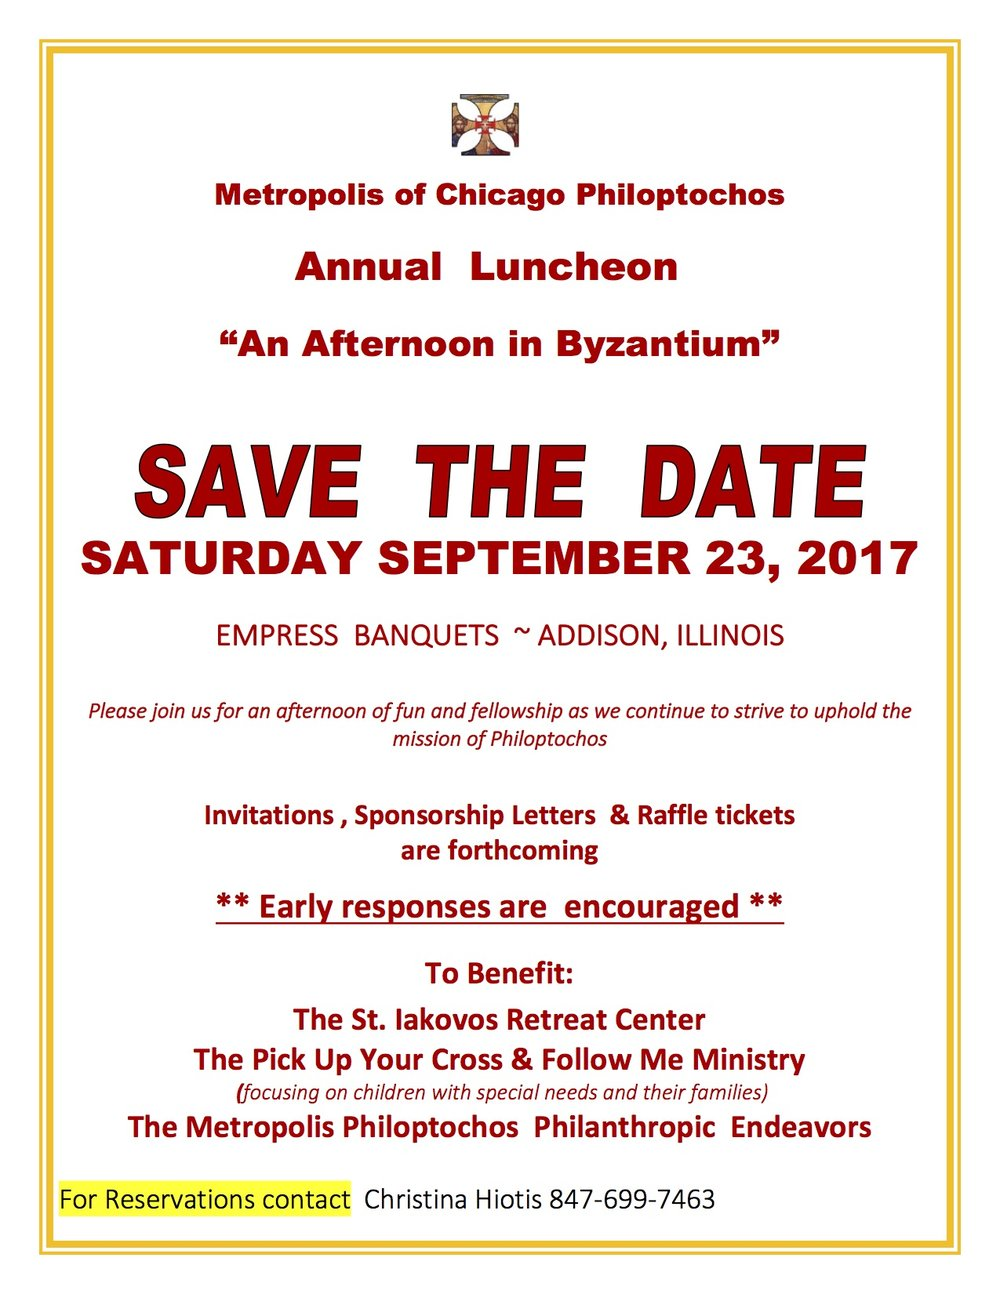 FINAL 2017 SAVE THE DATE FLYER.jpg